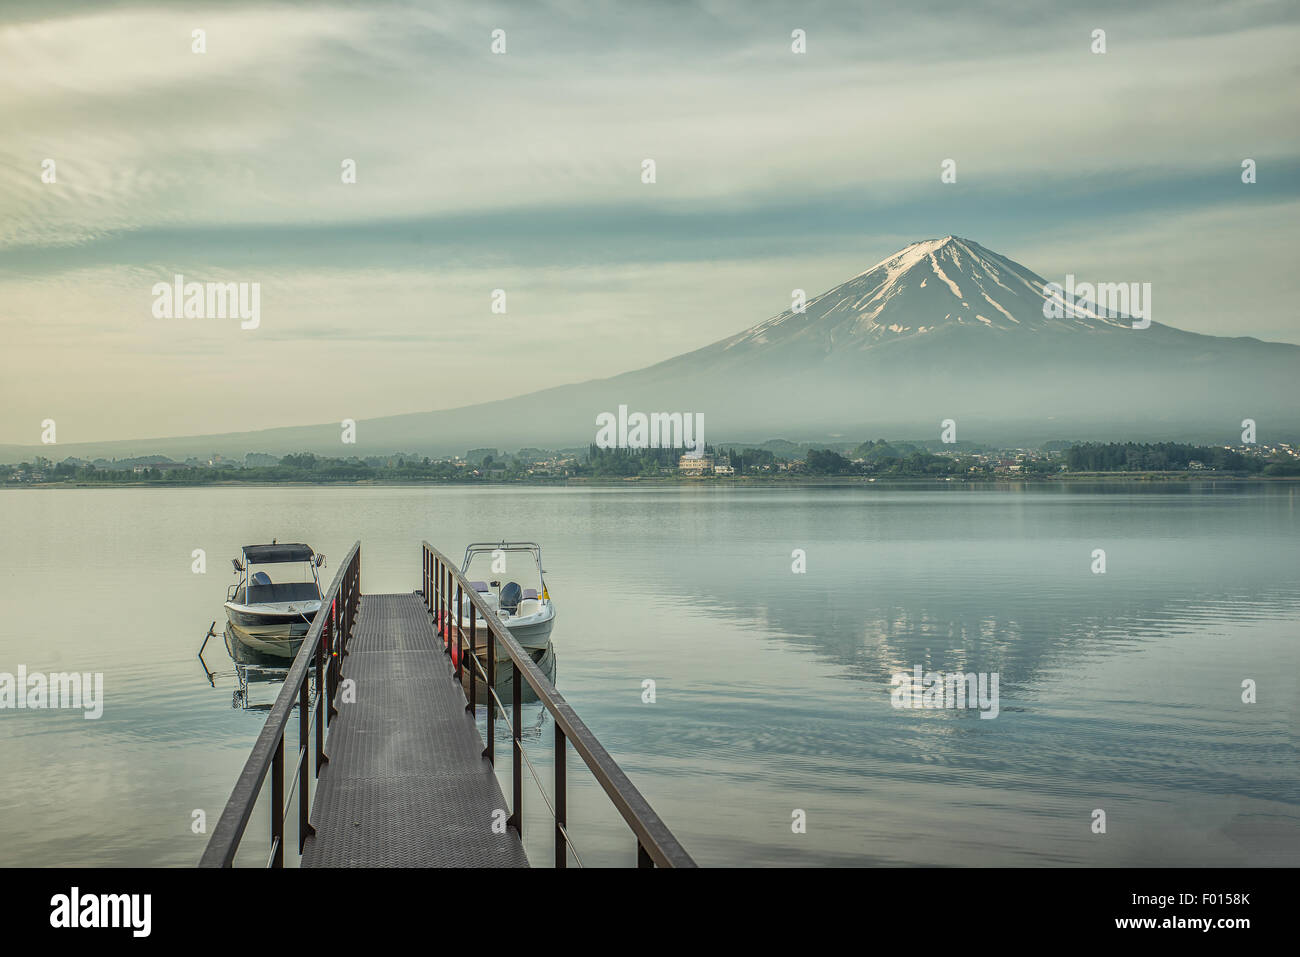 Mt.Fuji and jetty in Kawaguchiko, Japan - Stock Image